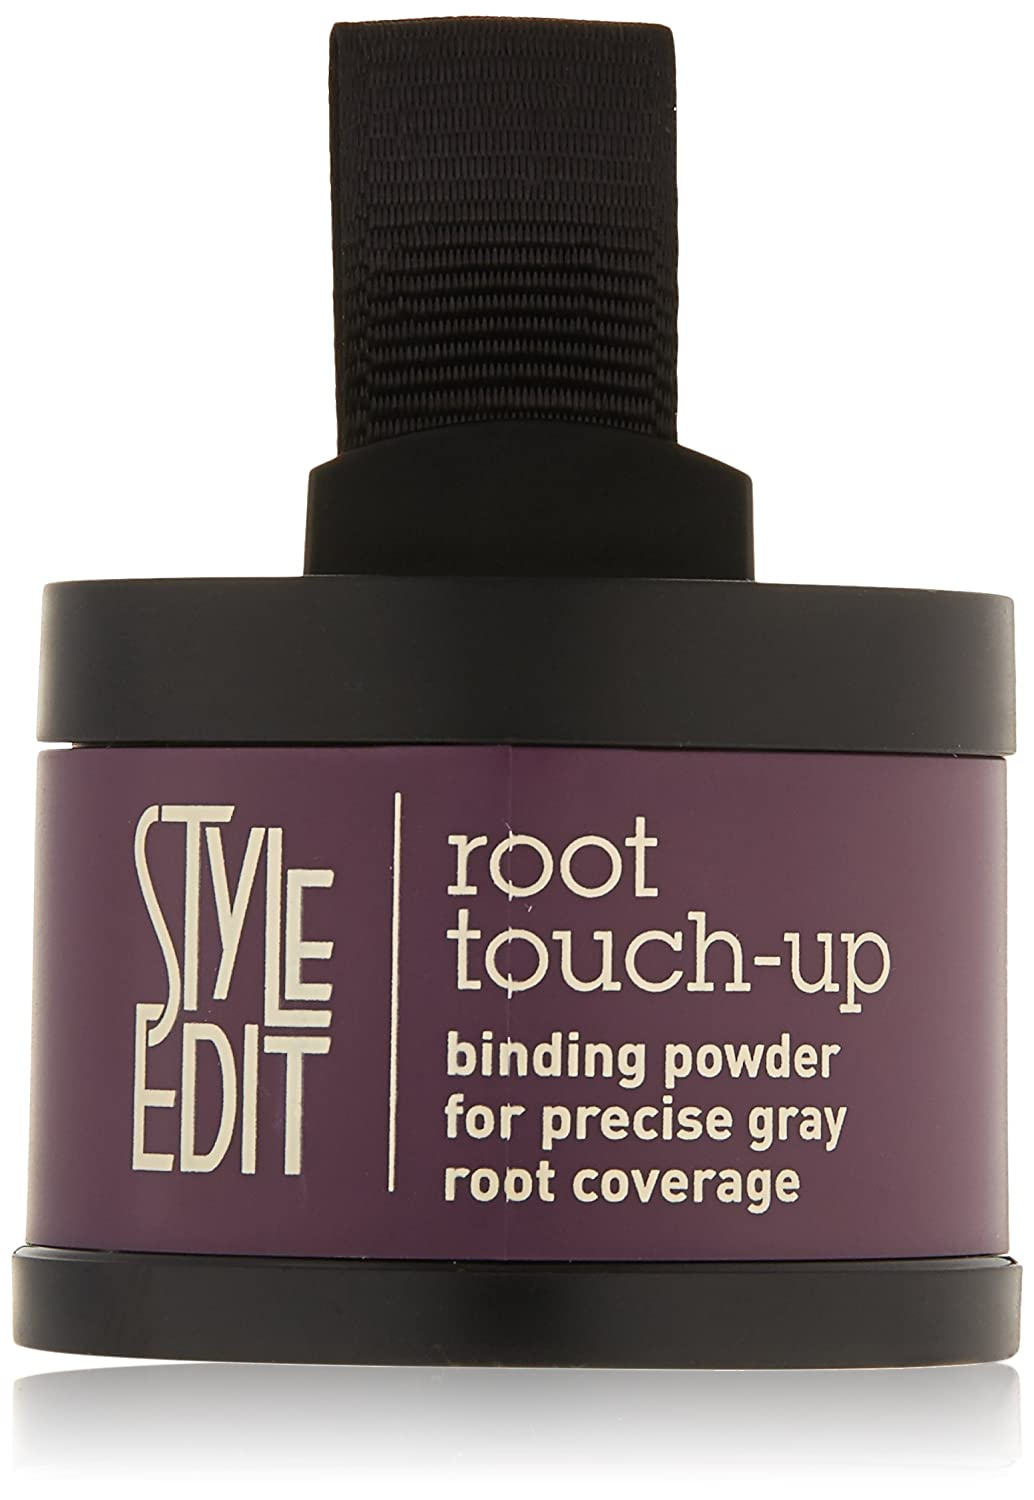 Style Edit Root Touch Up, Medium, Light Brown, 0.13 oz. SE-21